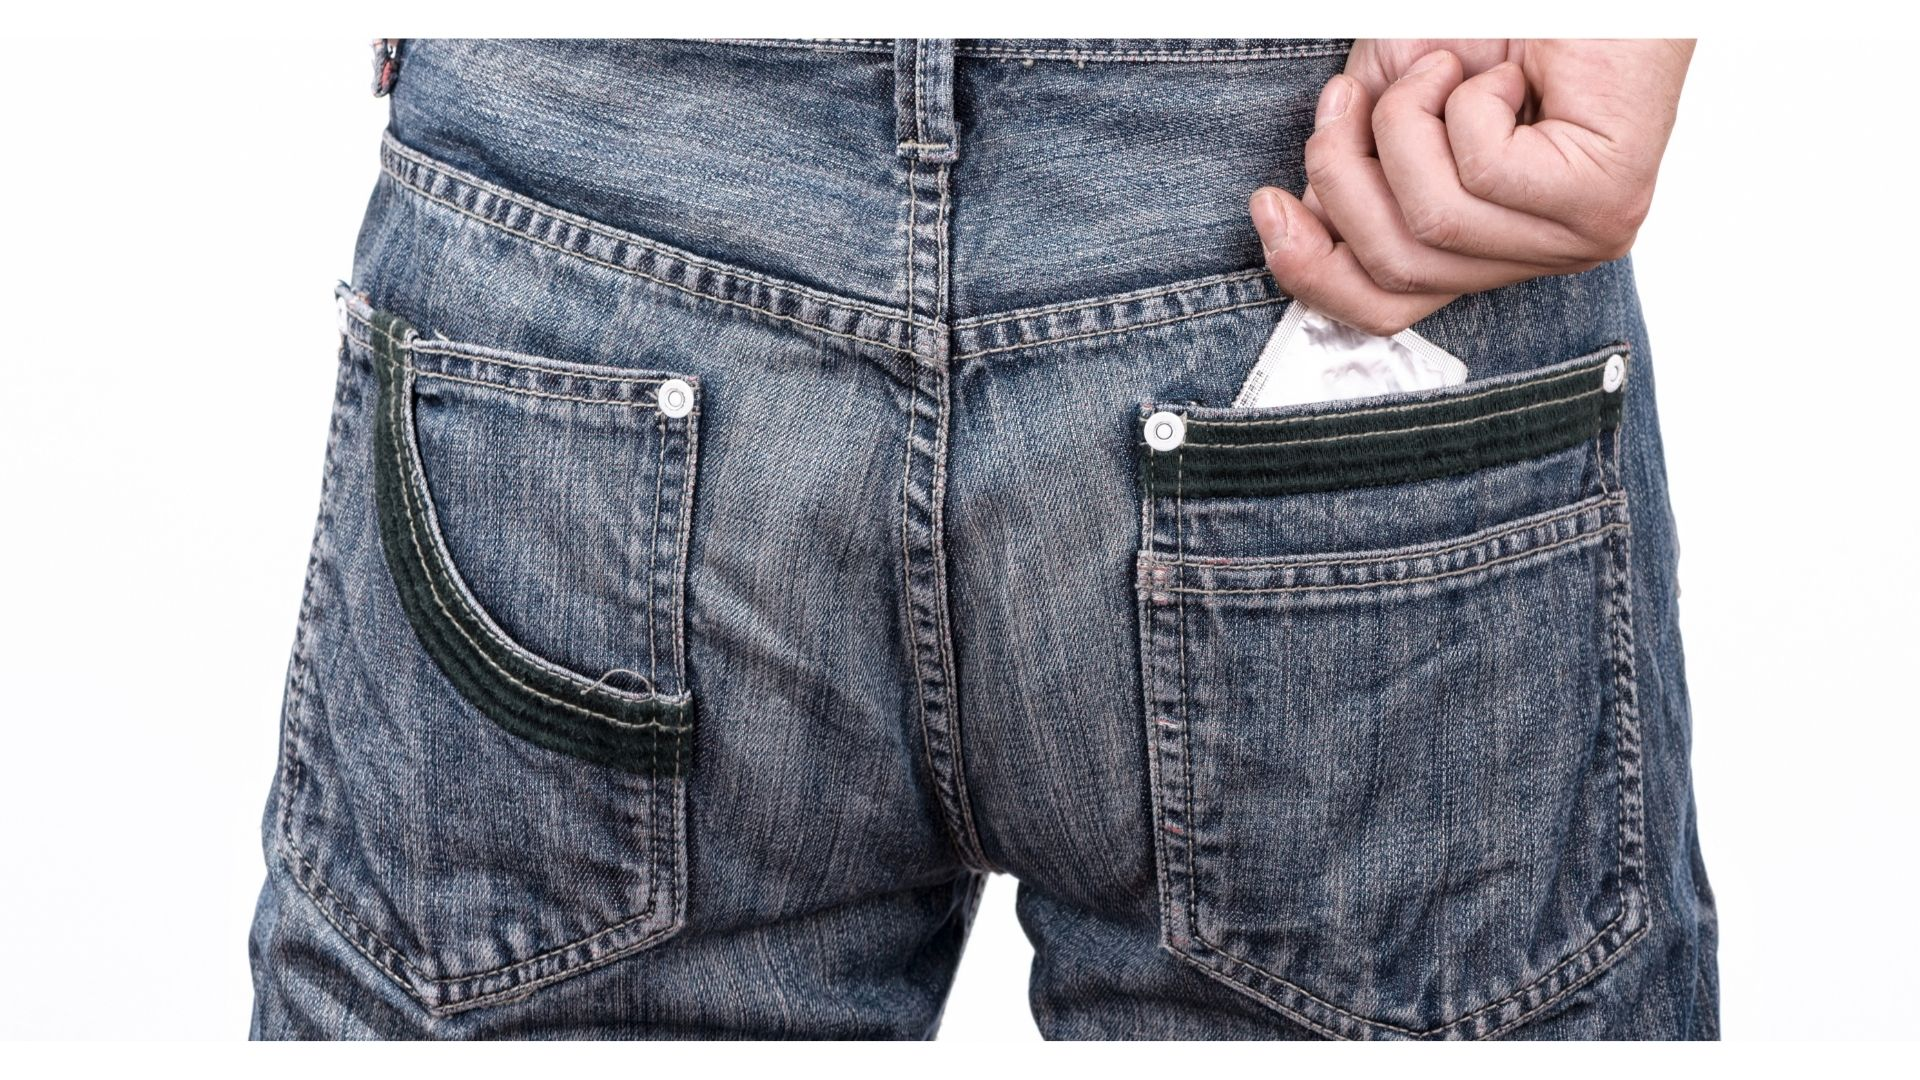 I hate condoms - a rear view of a man wearing jeans with a condom wrapper visible in his back pocket